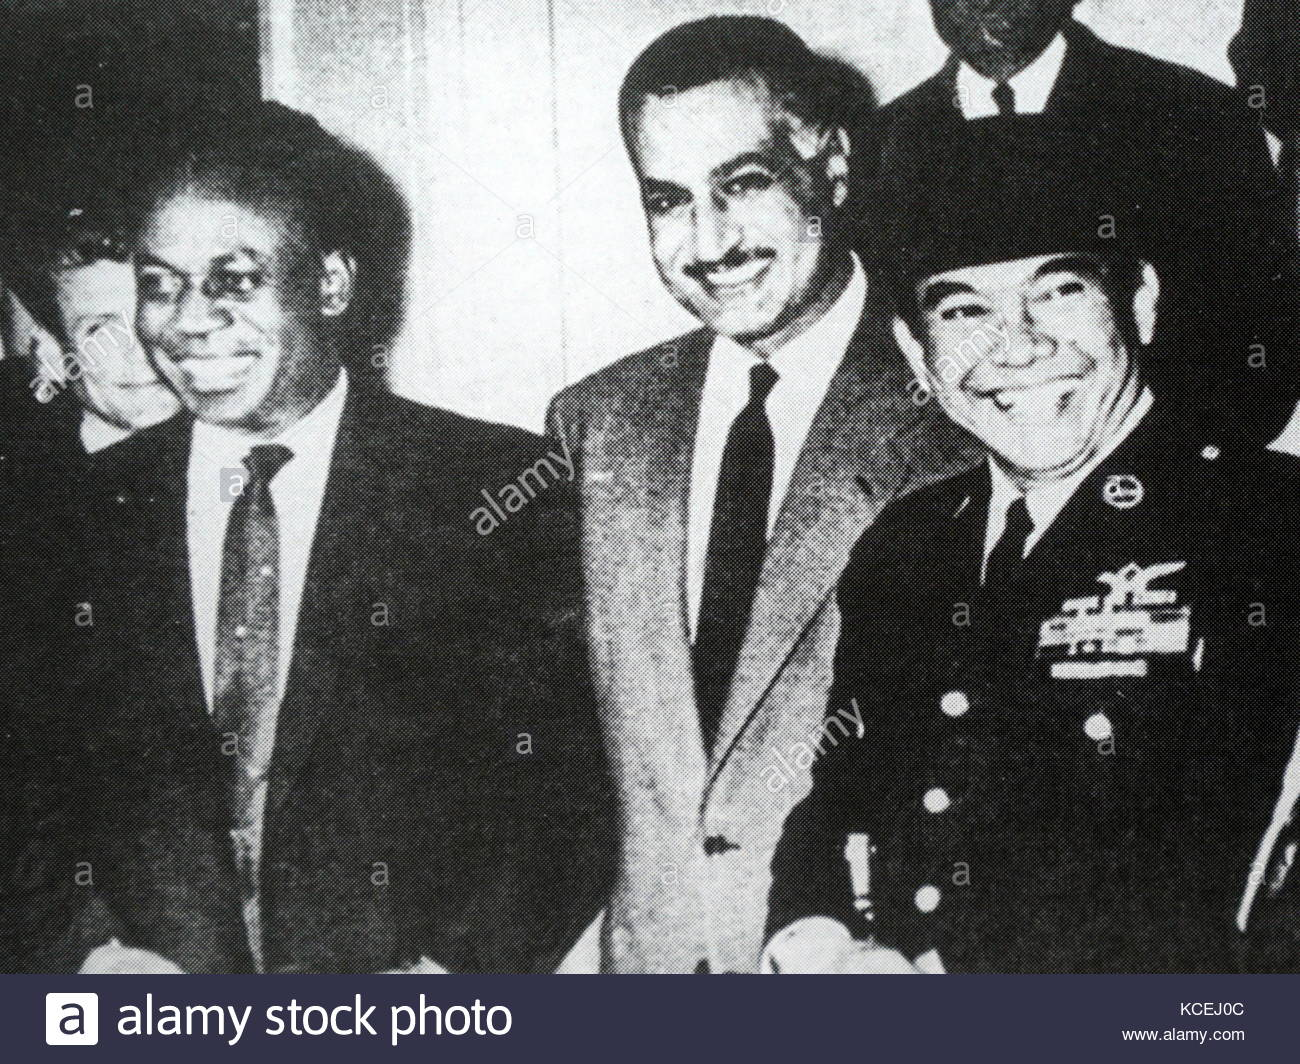 Left to right: Non-Aligned movement meeting with Ghana's Kwame Nkrumah, Egypt's Gamal Nasser and Indonesia's - Stock Image